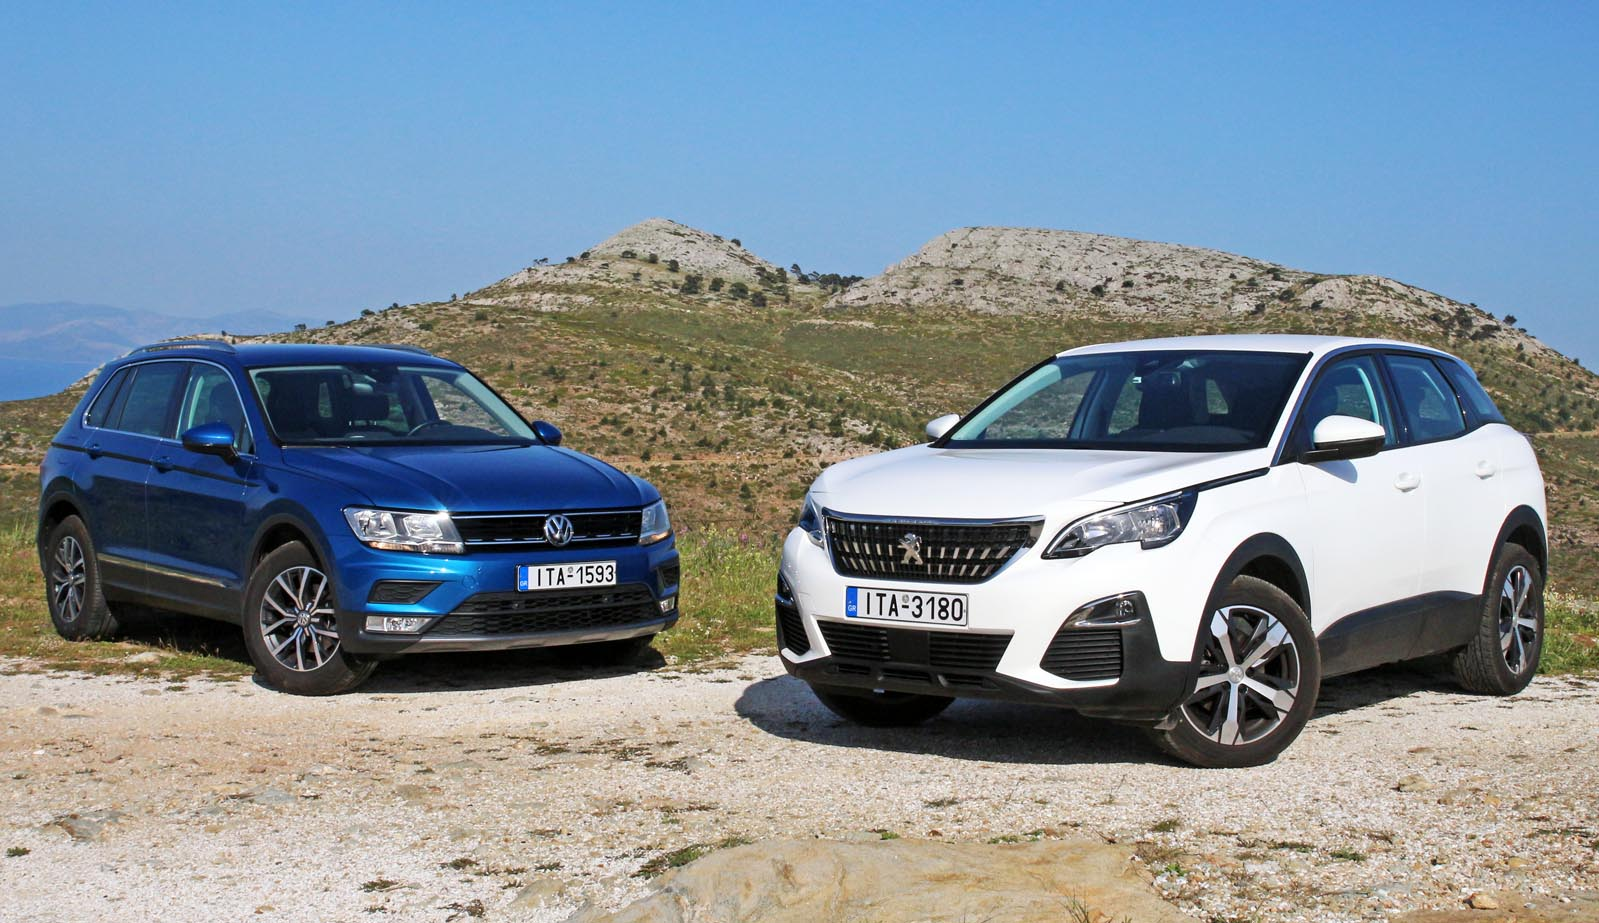 Photo of Peugeot 3008  1.2 PureTech 130 vs Voklswagen Tiguan 1.4 TSI 125PS [test drive]